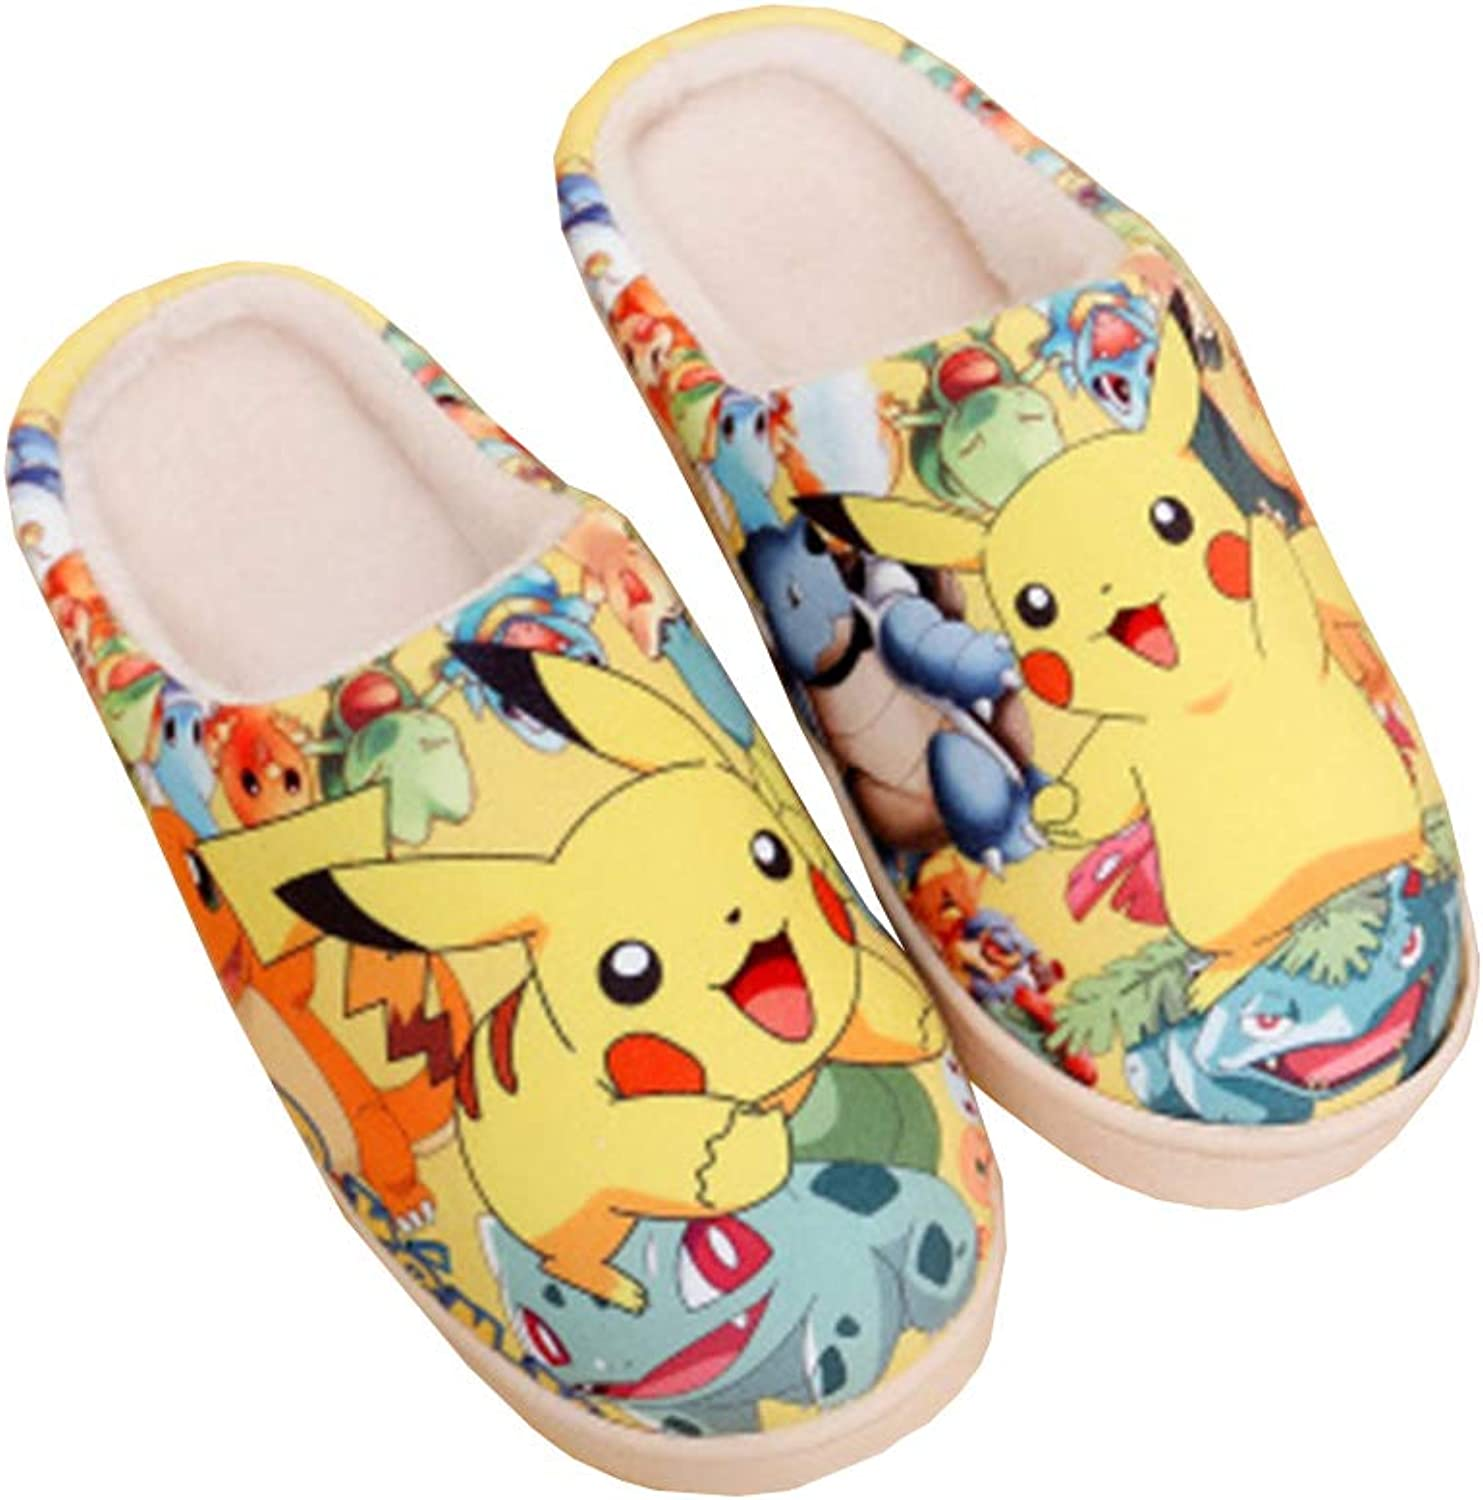 Winter Cotton Slippers Cartoon Pikachu Anti-Slip Home Rubber Soles Ultra Warm Slipper Indoor Outdoor Slip On shoes